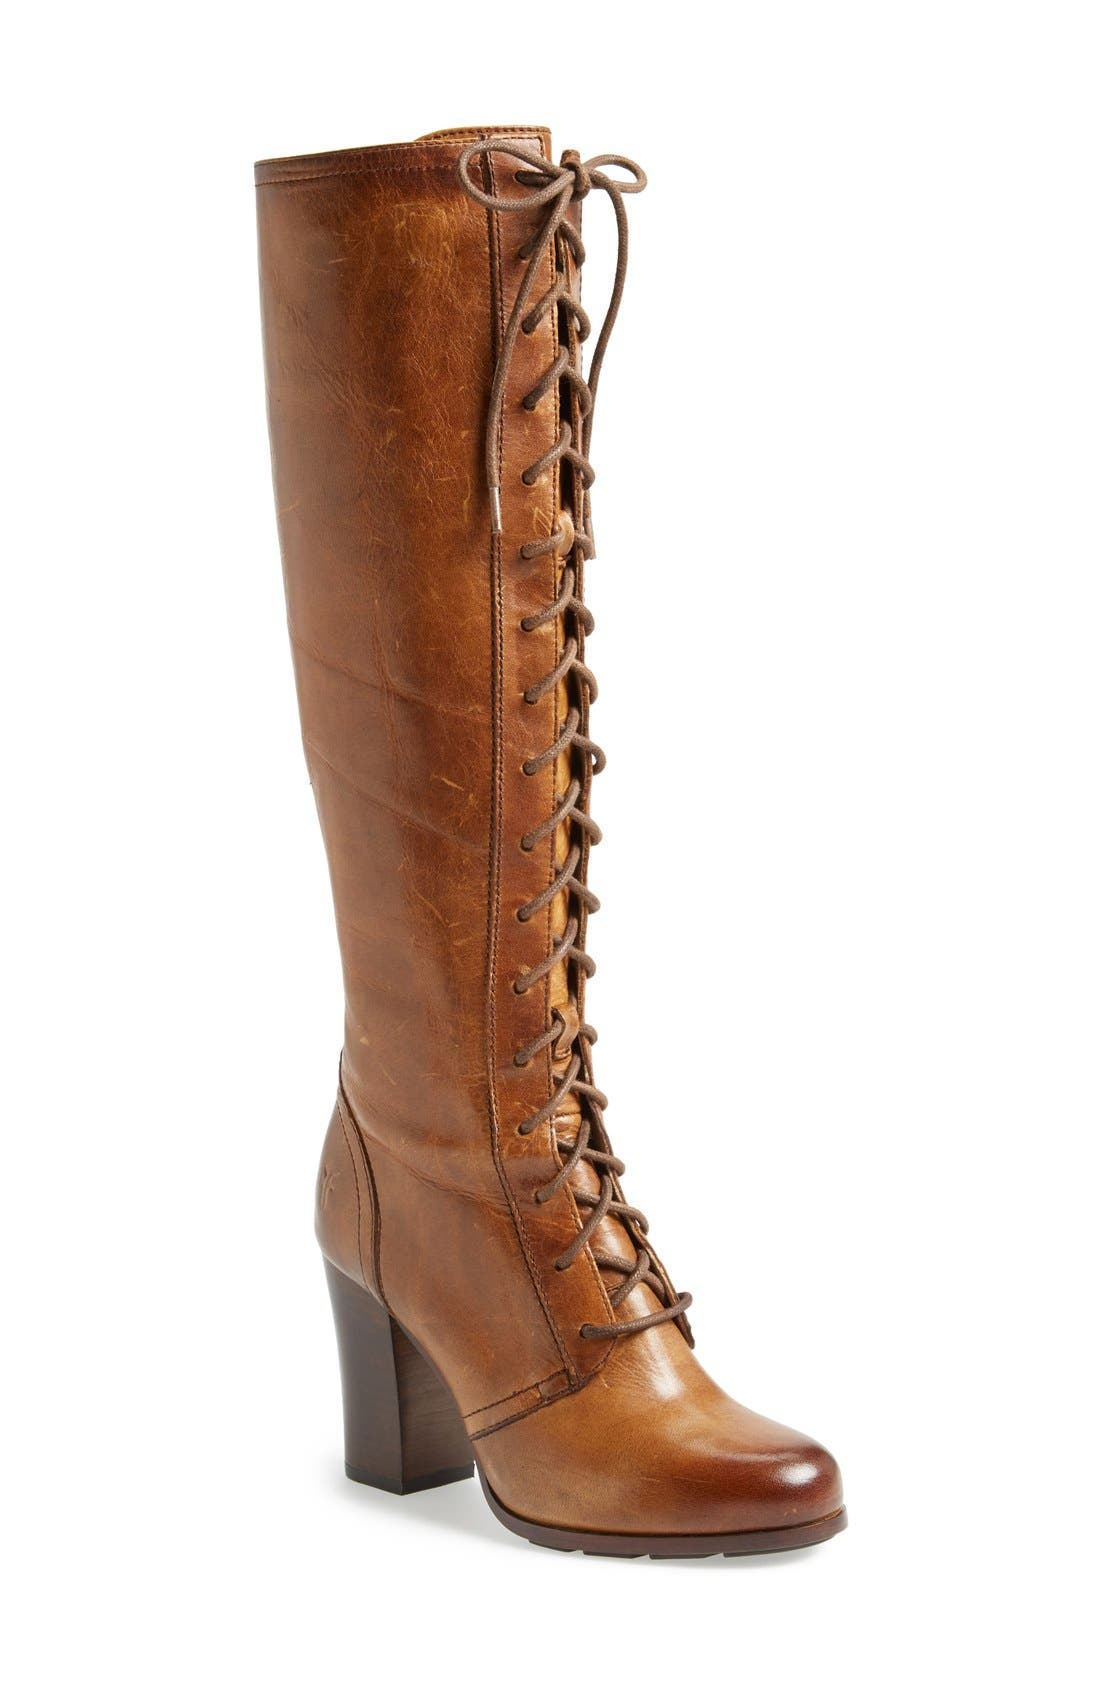 Alternate Image 1 Selected - Frye 'Parker' Lace-Up Tall Boot (Women)